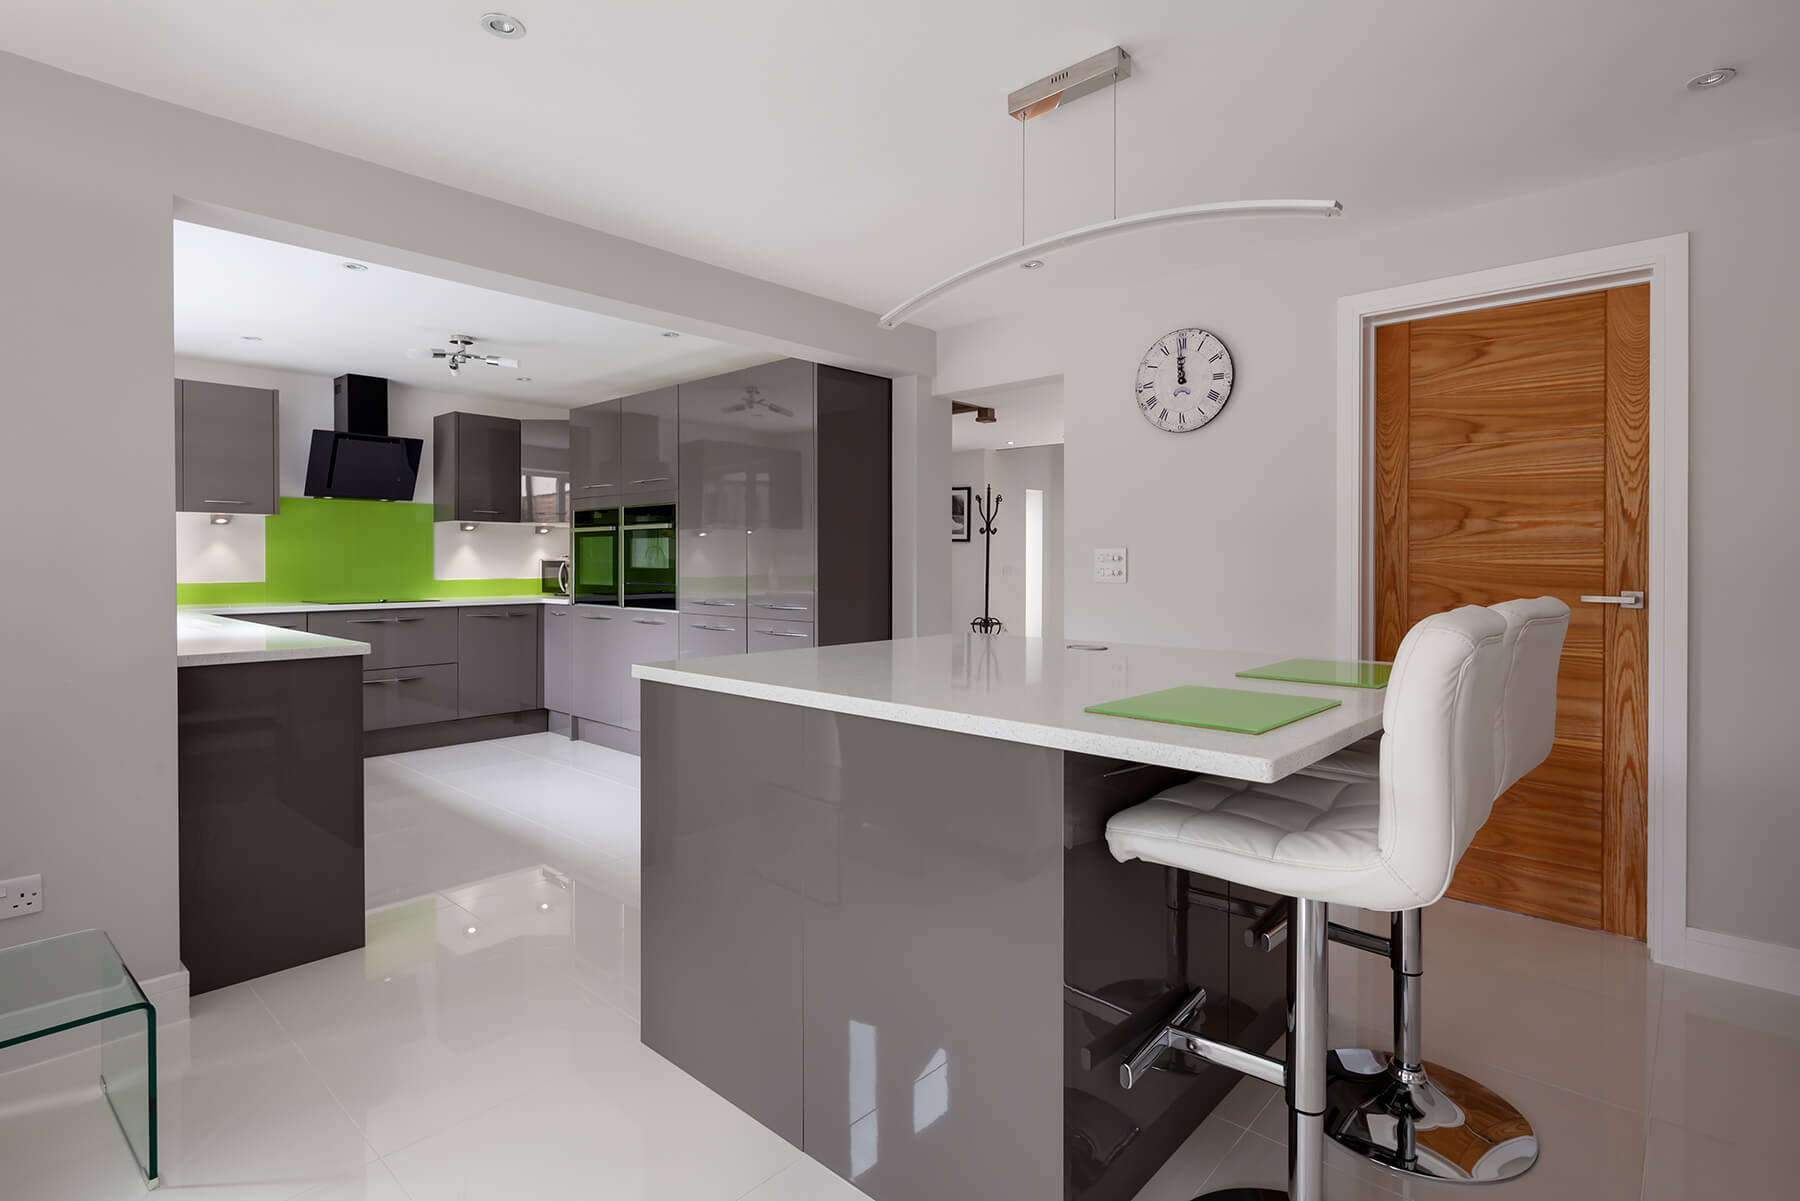 Modern kitchen with green splashback